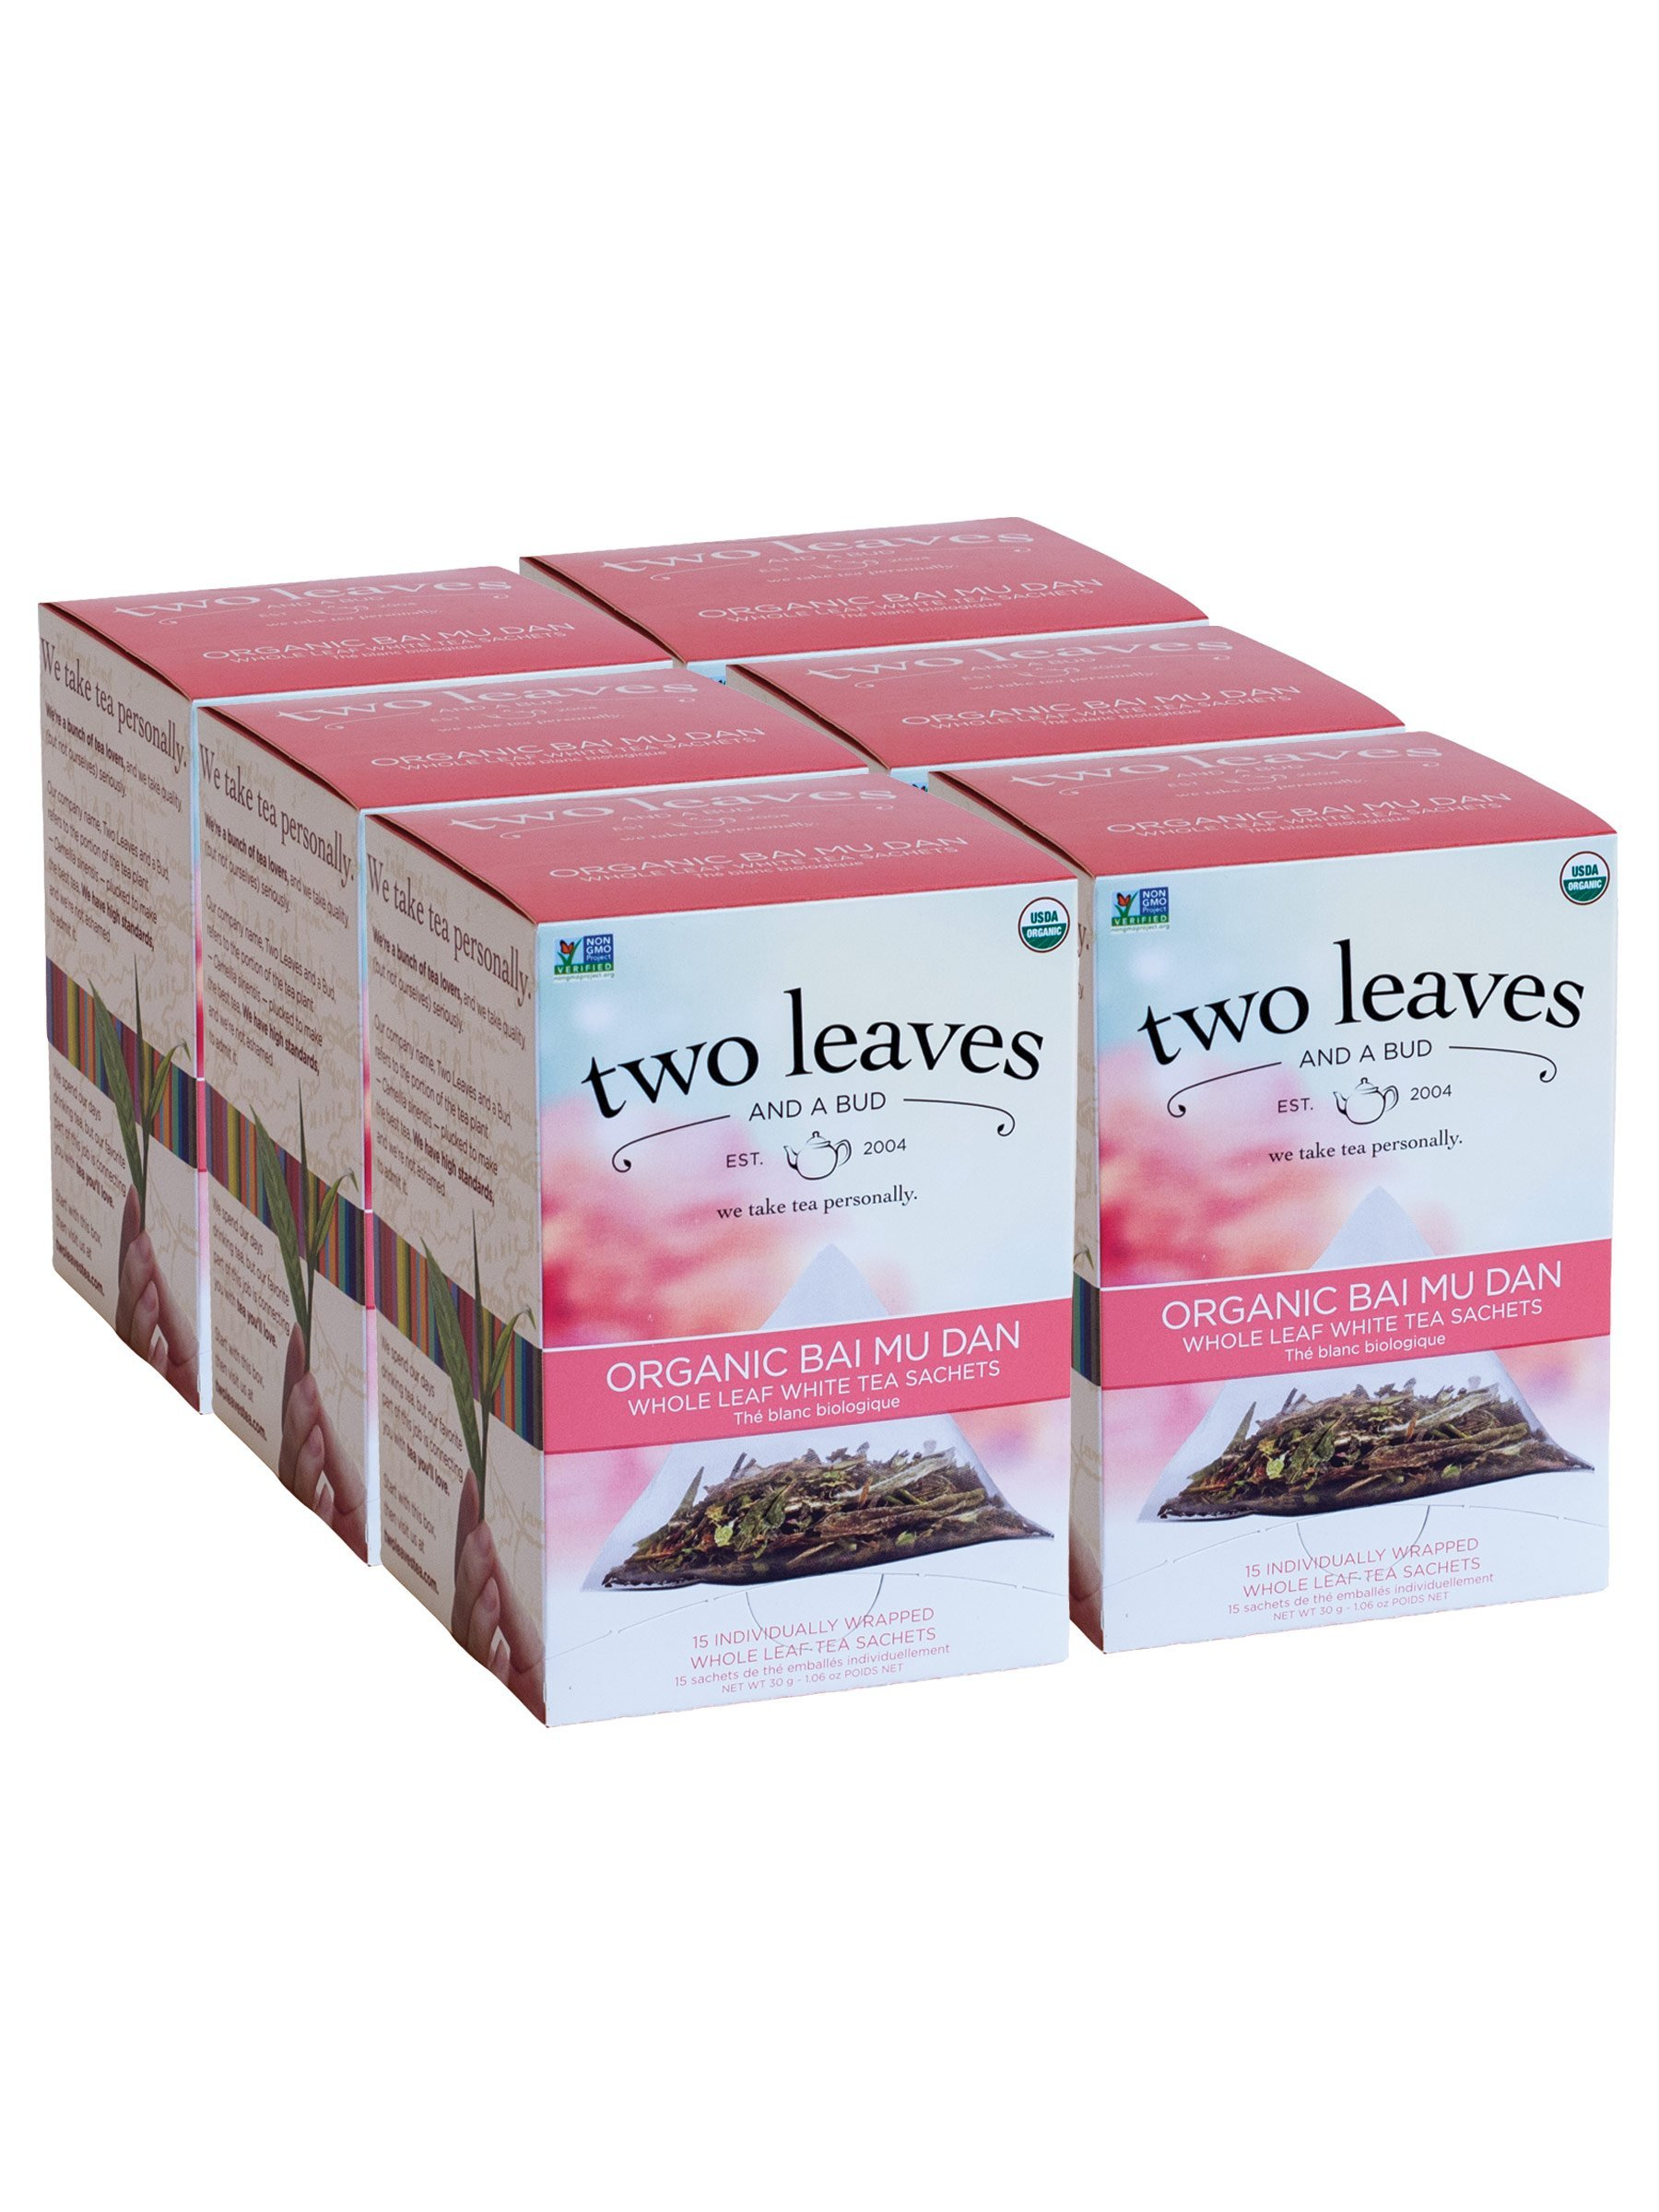 Two Leaves and a Bud Organic Bai Mu Dan White Tea Bags, 15 Count (Pack of 6) Organic Whole Leaf White Tea in Pyramid Sachet Bags, Delicious Hot or Iced with Milk or Sugar or Honey or Plain